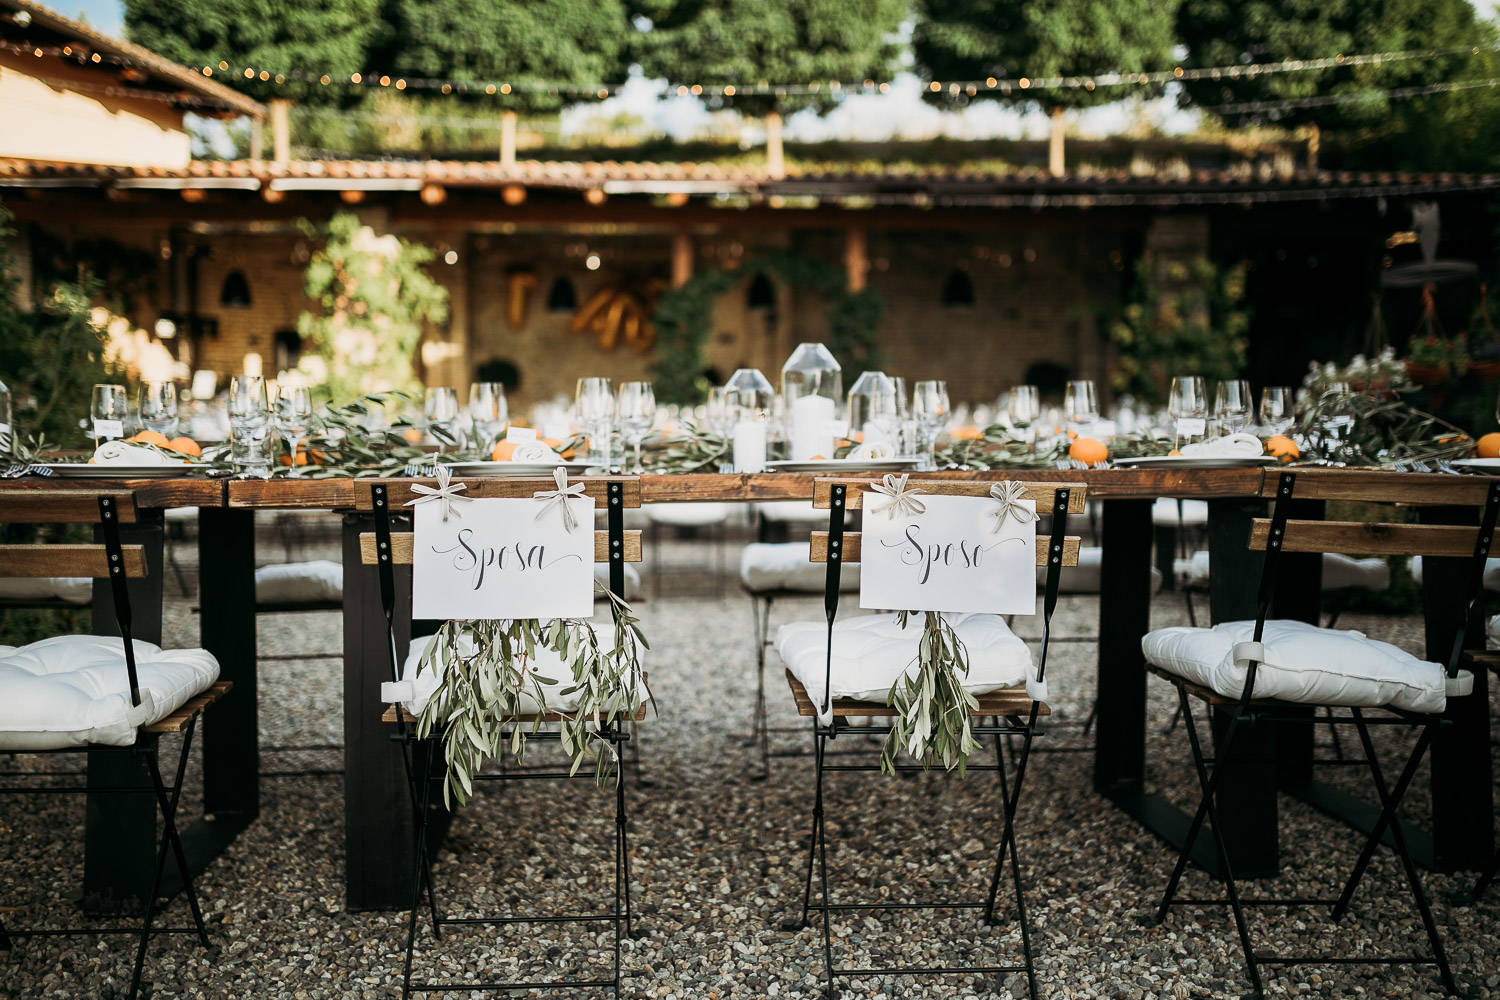 Bride and groom chair at the wedding table in italian style